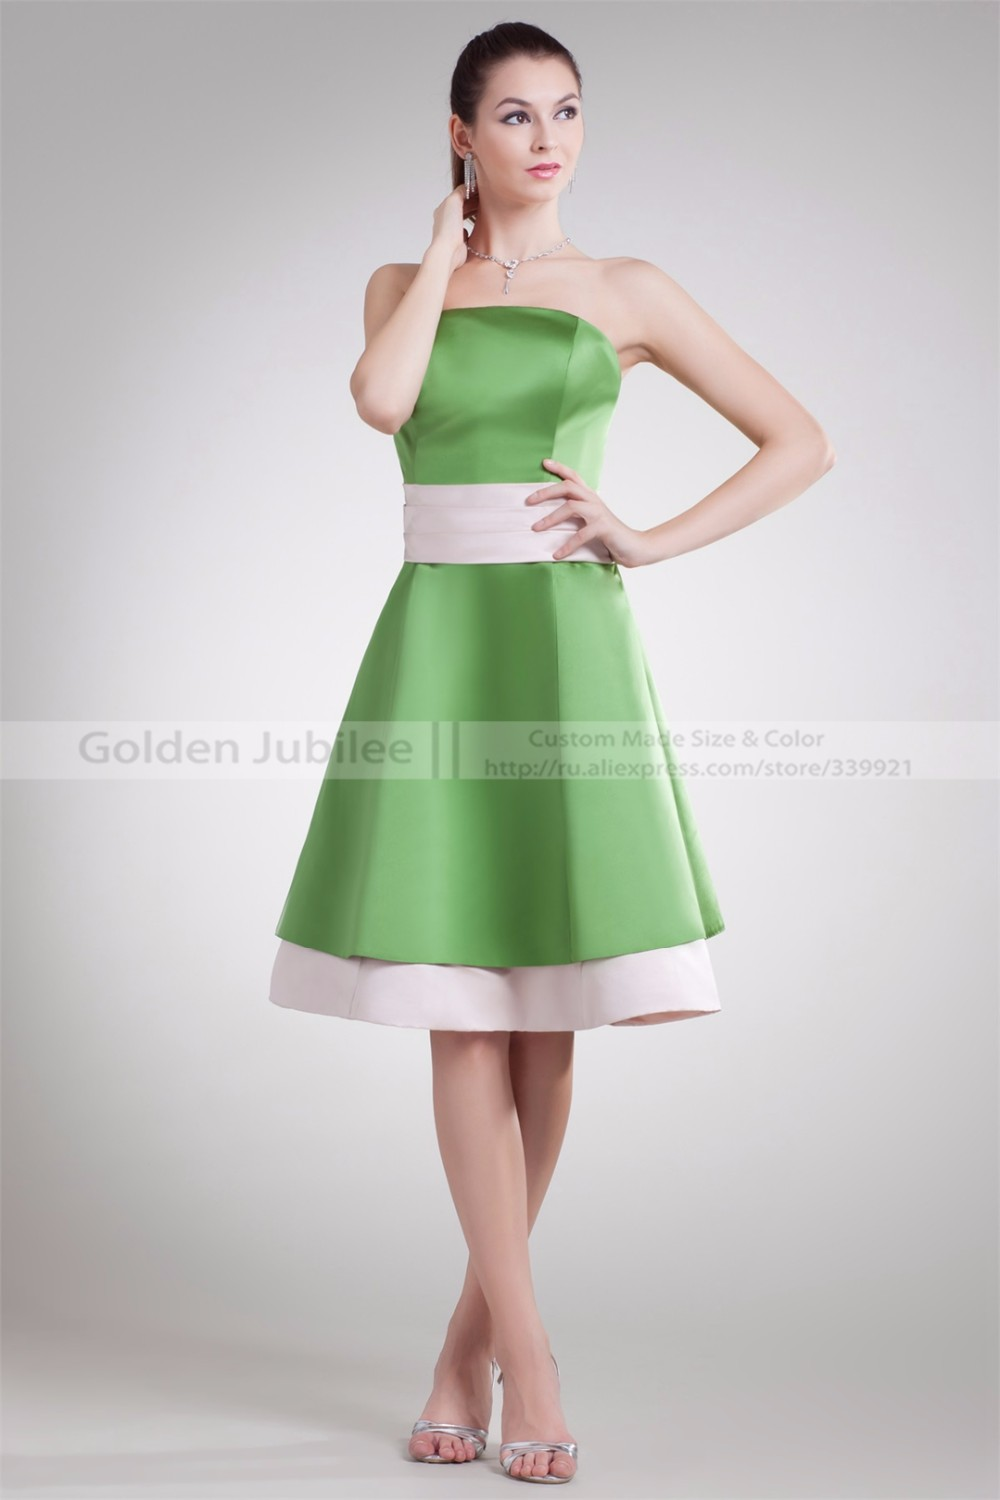 Satin-Strapless-Sleeveless-A-Line-Tiered-Special-Occasion-Dresses-23251-85265